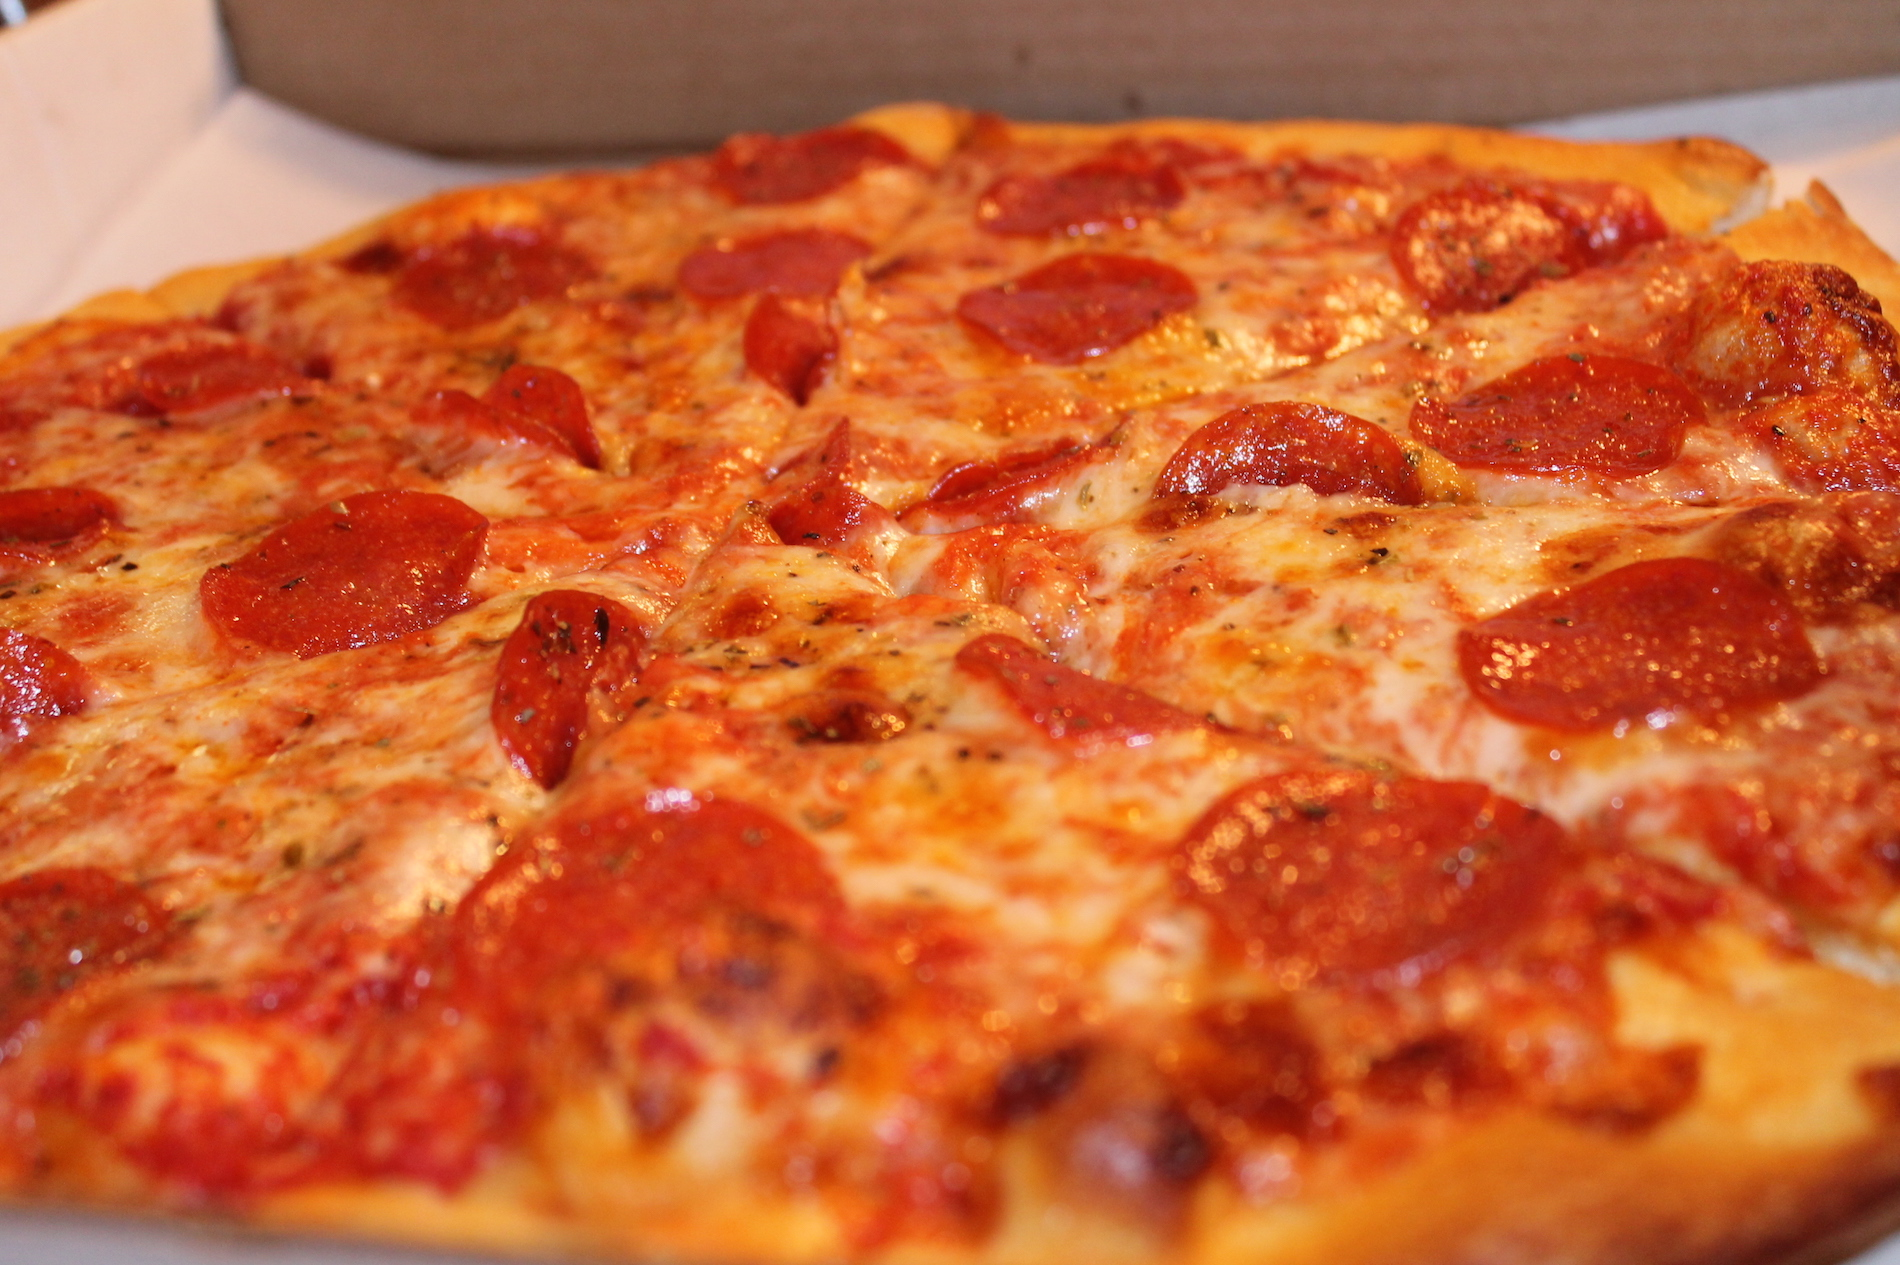 College Kid Swarmed by Cops with Tasers After Falling for Pizza Scam